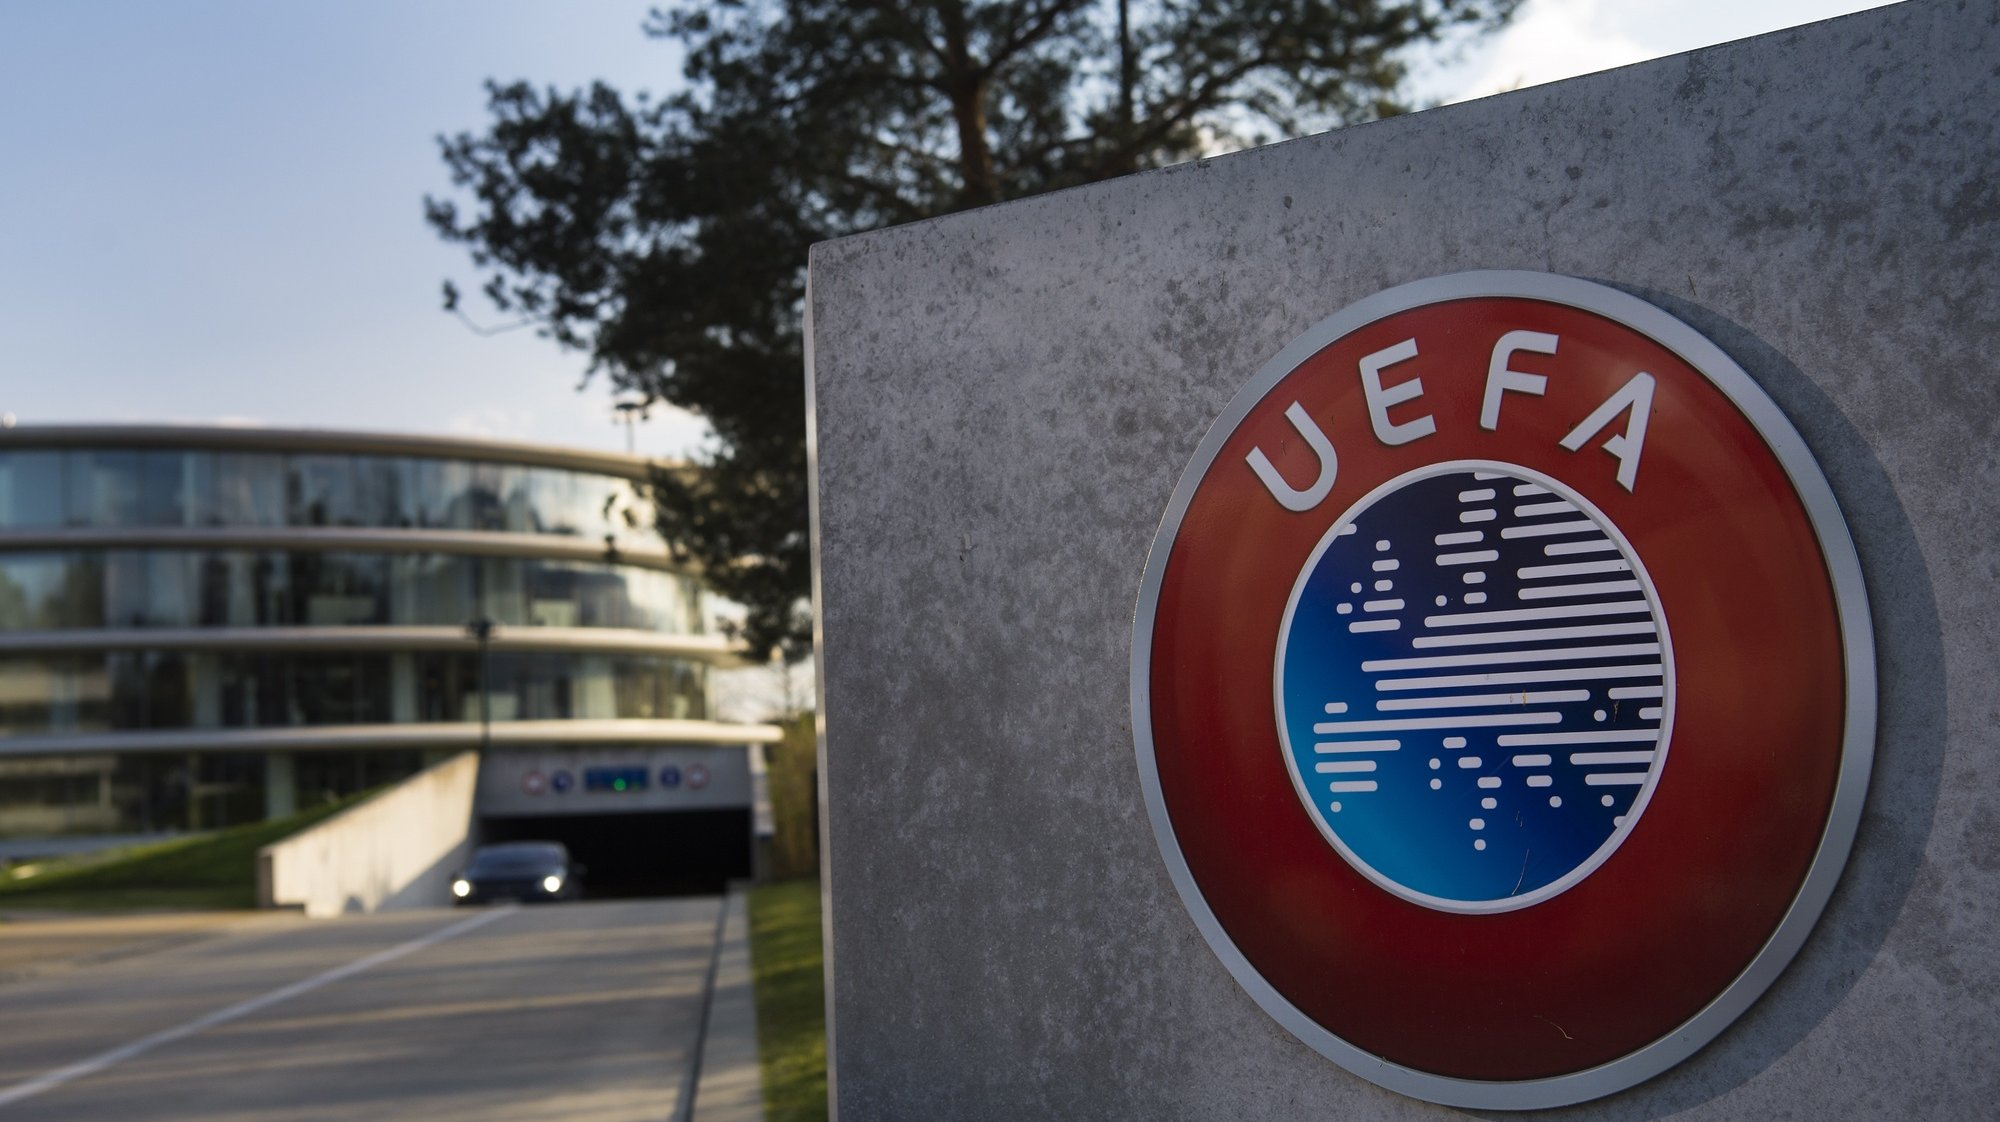 epa08300459 (FILE) - The UEFA logo on display next to the entrance of the UEFA Headquarters in Nyon, Switzerland, 06 April 2016 (re-issued on 17 March 2020). The UEFA EURO 2020 has been postponed to 2021 amid the coronavirus COVID-19 pandemic, the Norwegian Football Association (NFF) announced on 17 March 2020.  EPA/JEAN-CHRISTOPHE BOTT *** Local Caption *** 52687192